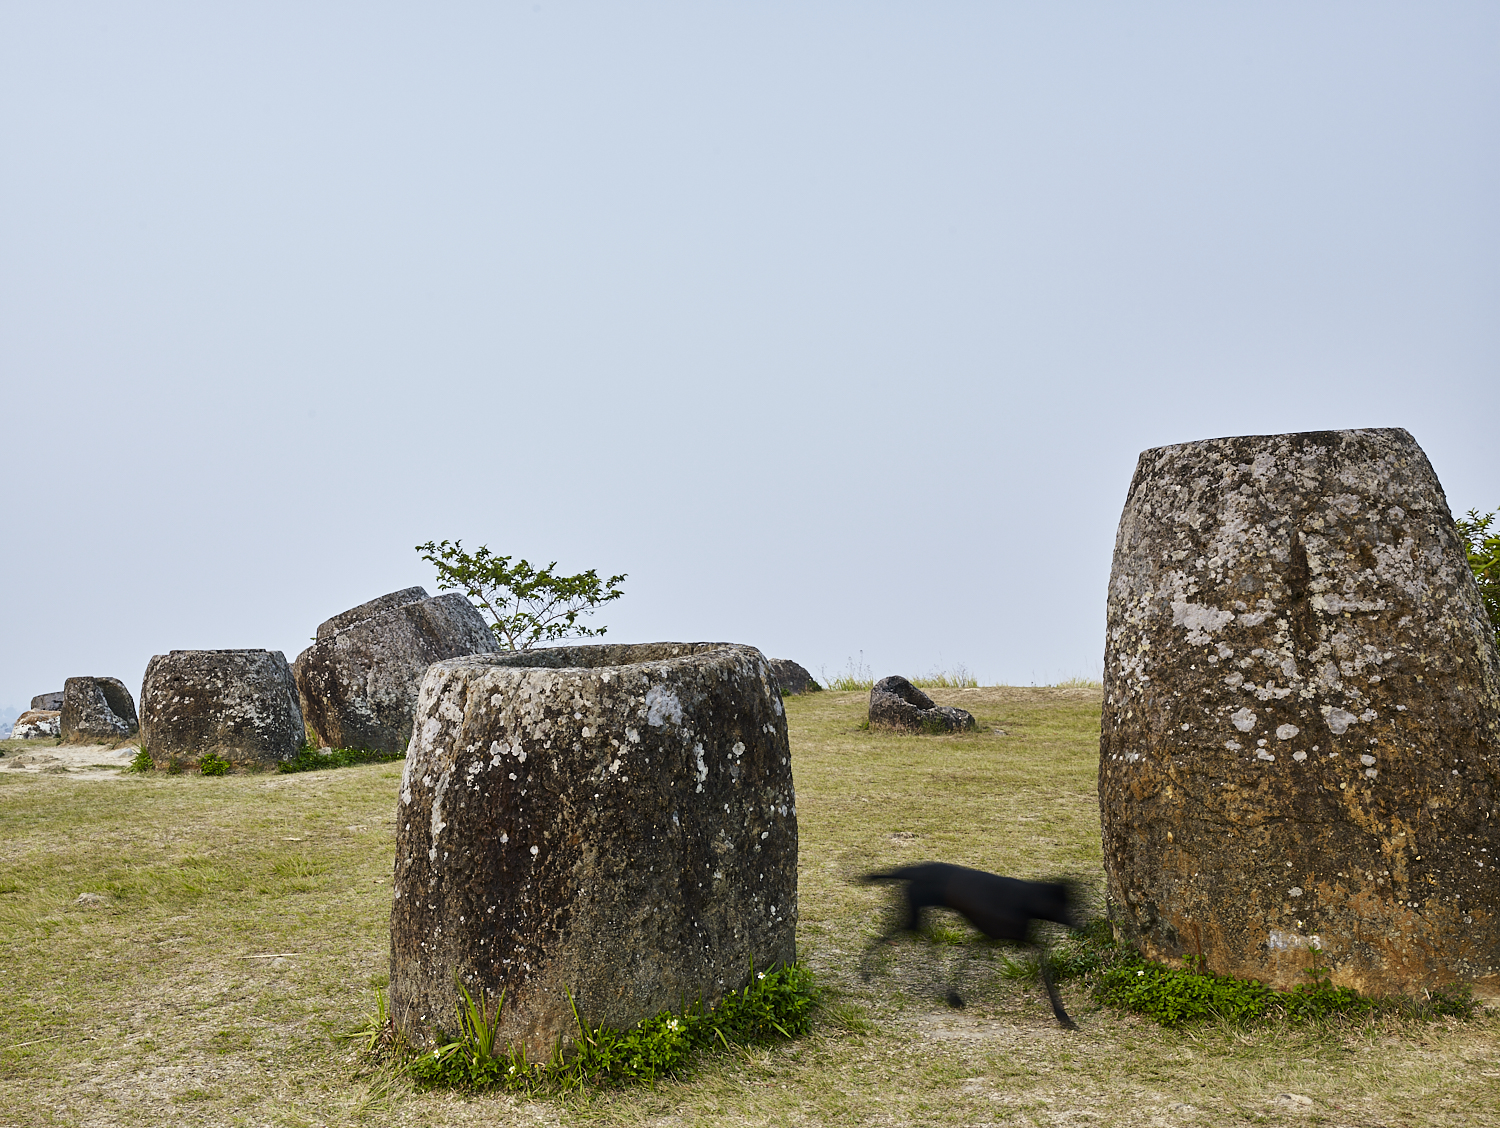 Black dog with jars, Plain of Jars, Xiang Khouang Plateau, Laos, 2016